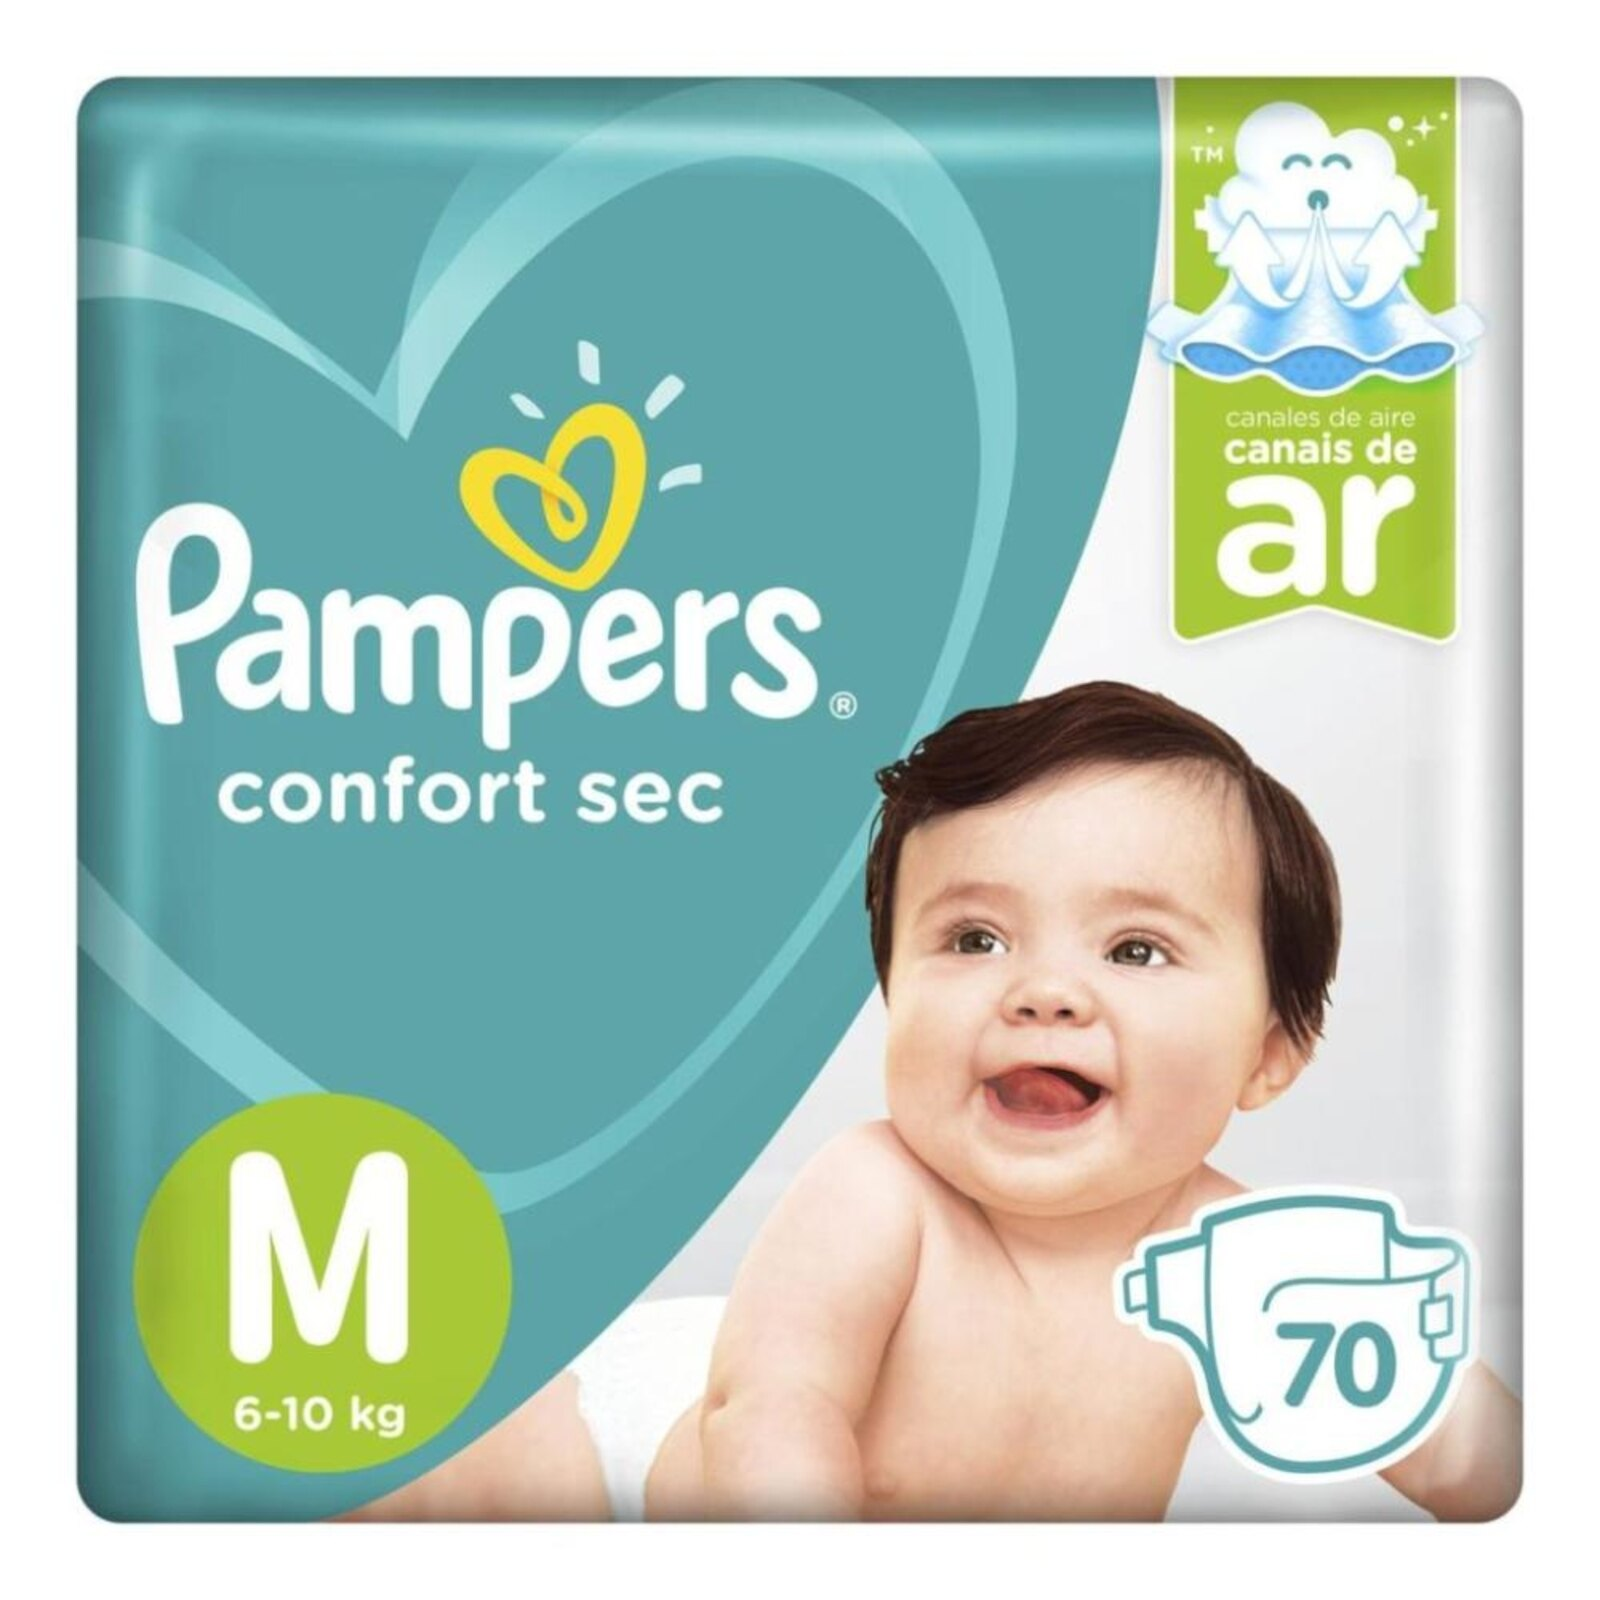 Fralda Pampers Confort Sec Super - M 70 tiras